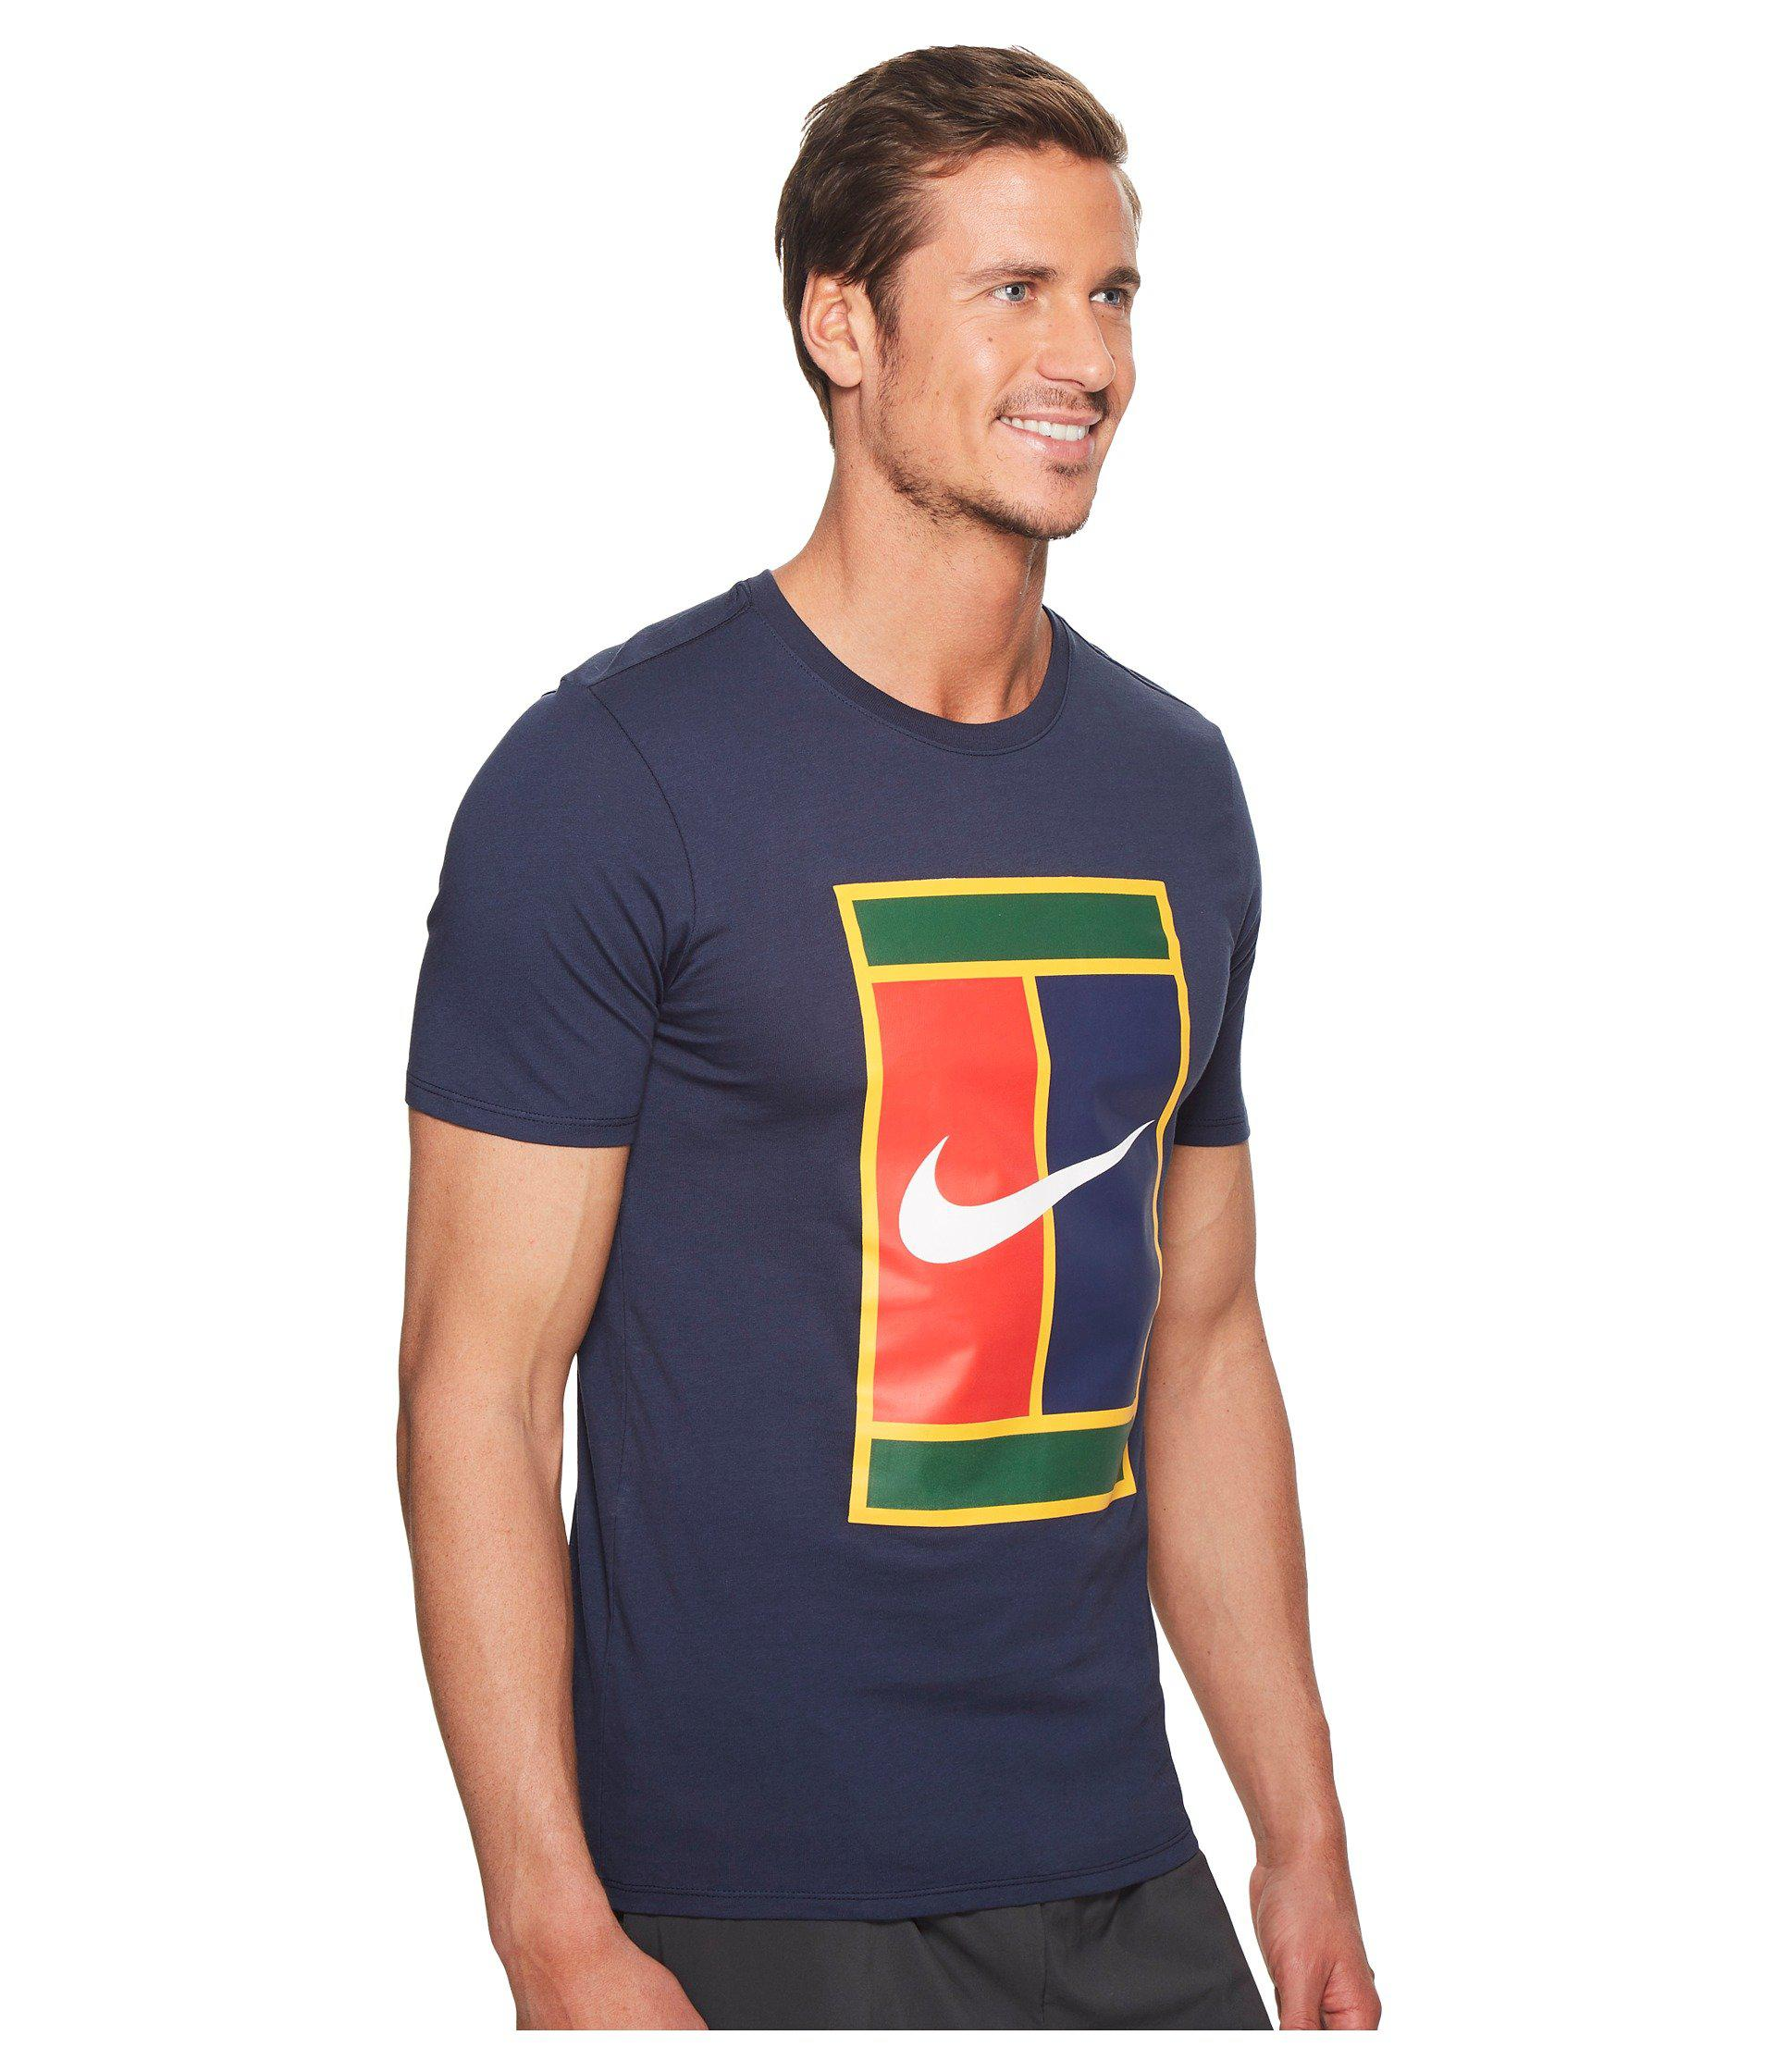 e8a264c3 Nike Court Heritage Logo Tennis Tee in Blue for Men - Lyst